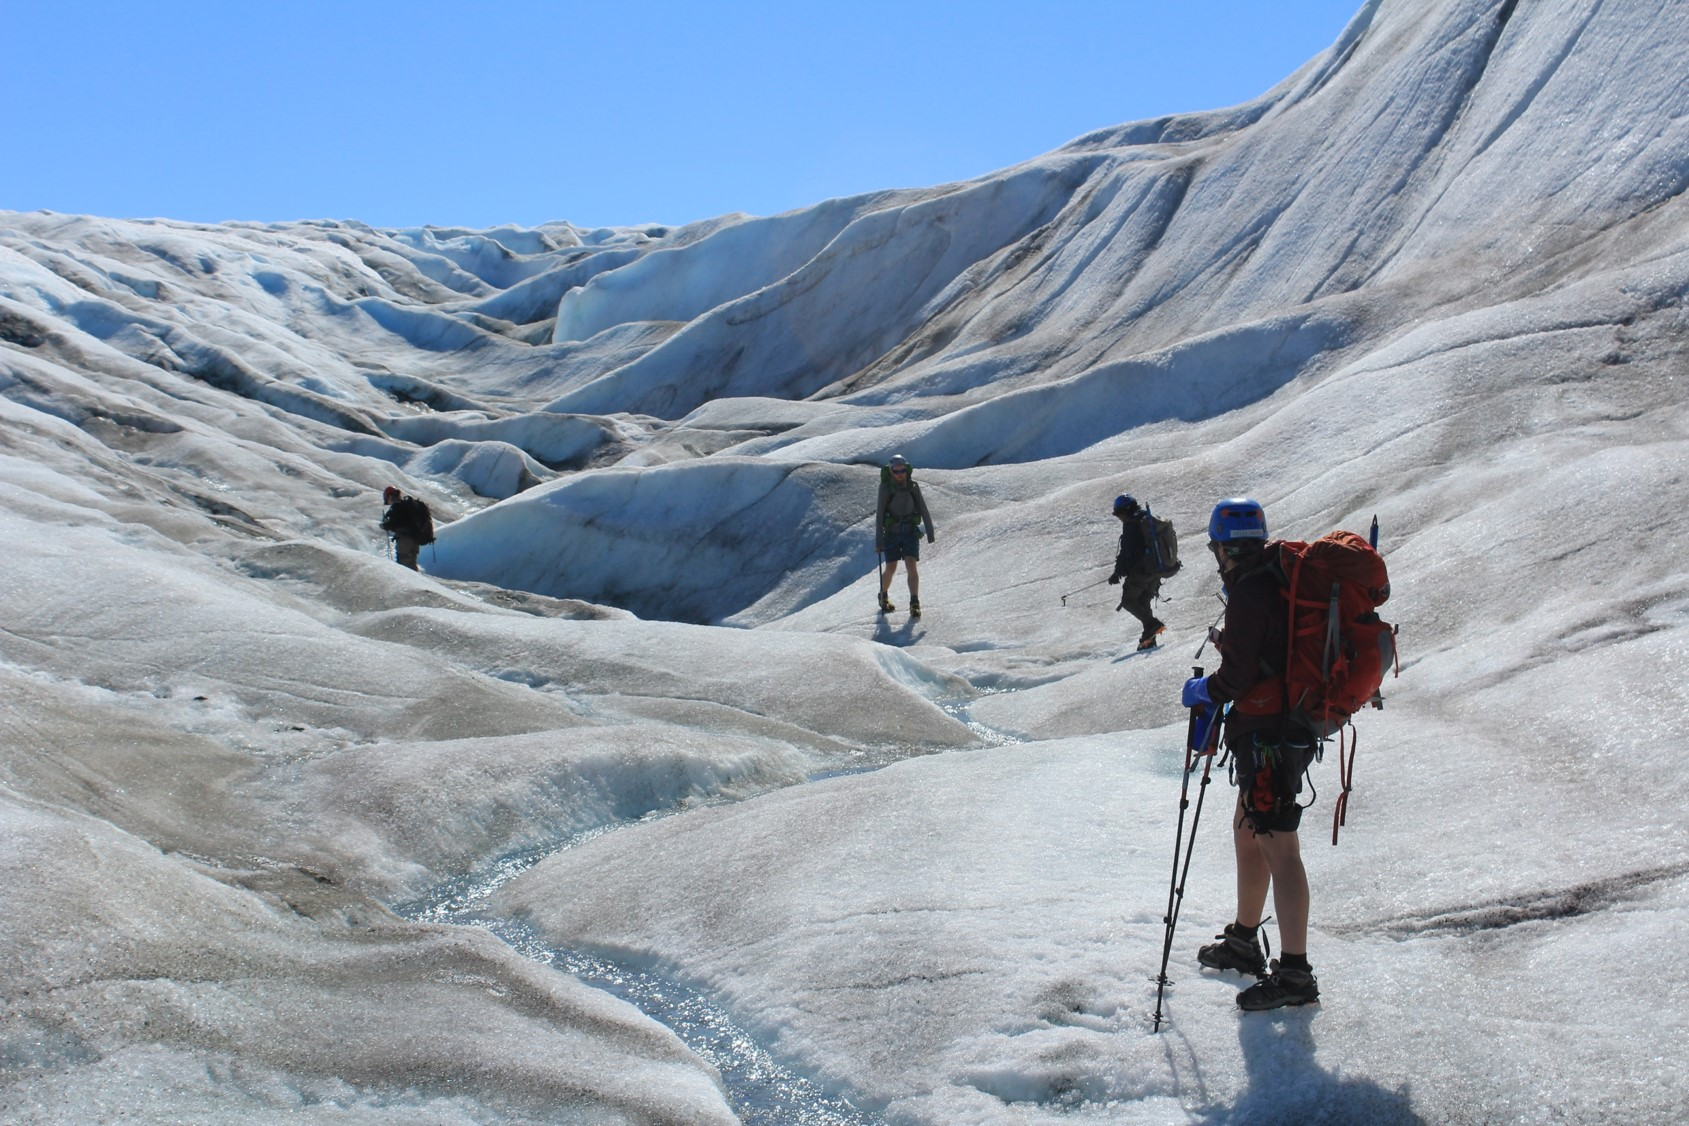 The biogeochemistry student research team explores a supraglacial meltwater stream on the Llewellyn Glacier. Photo: Evan Koncewicz.